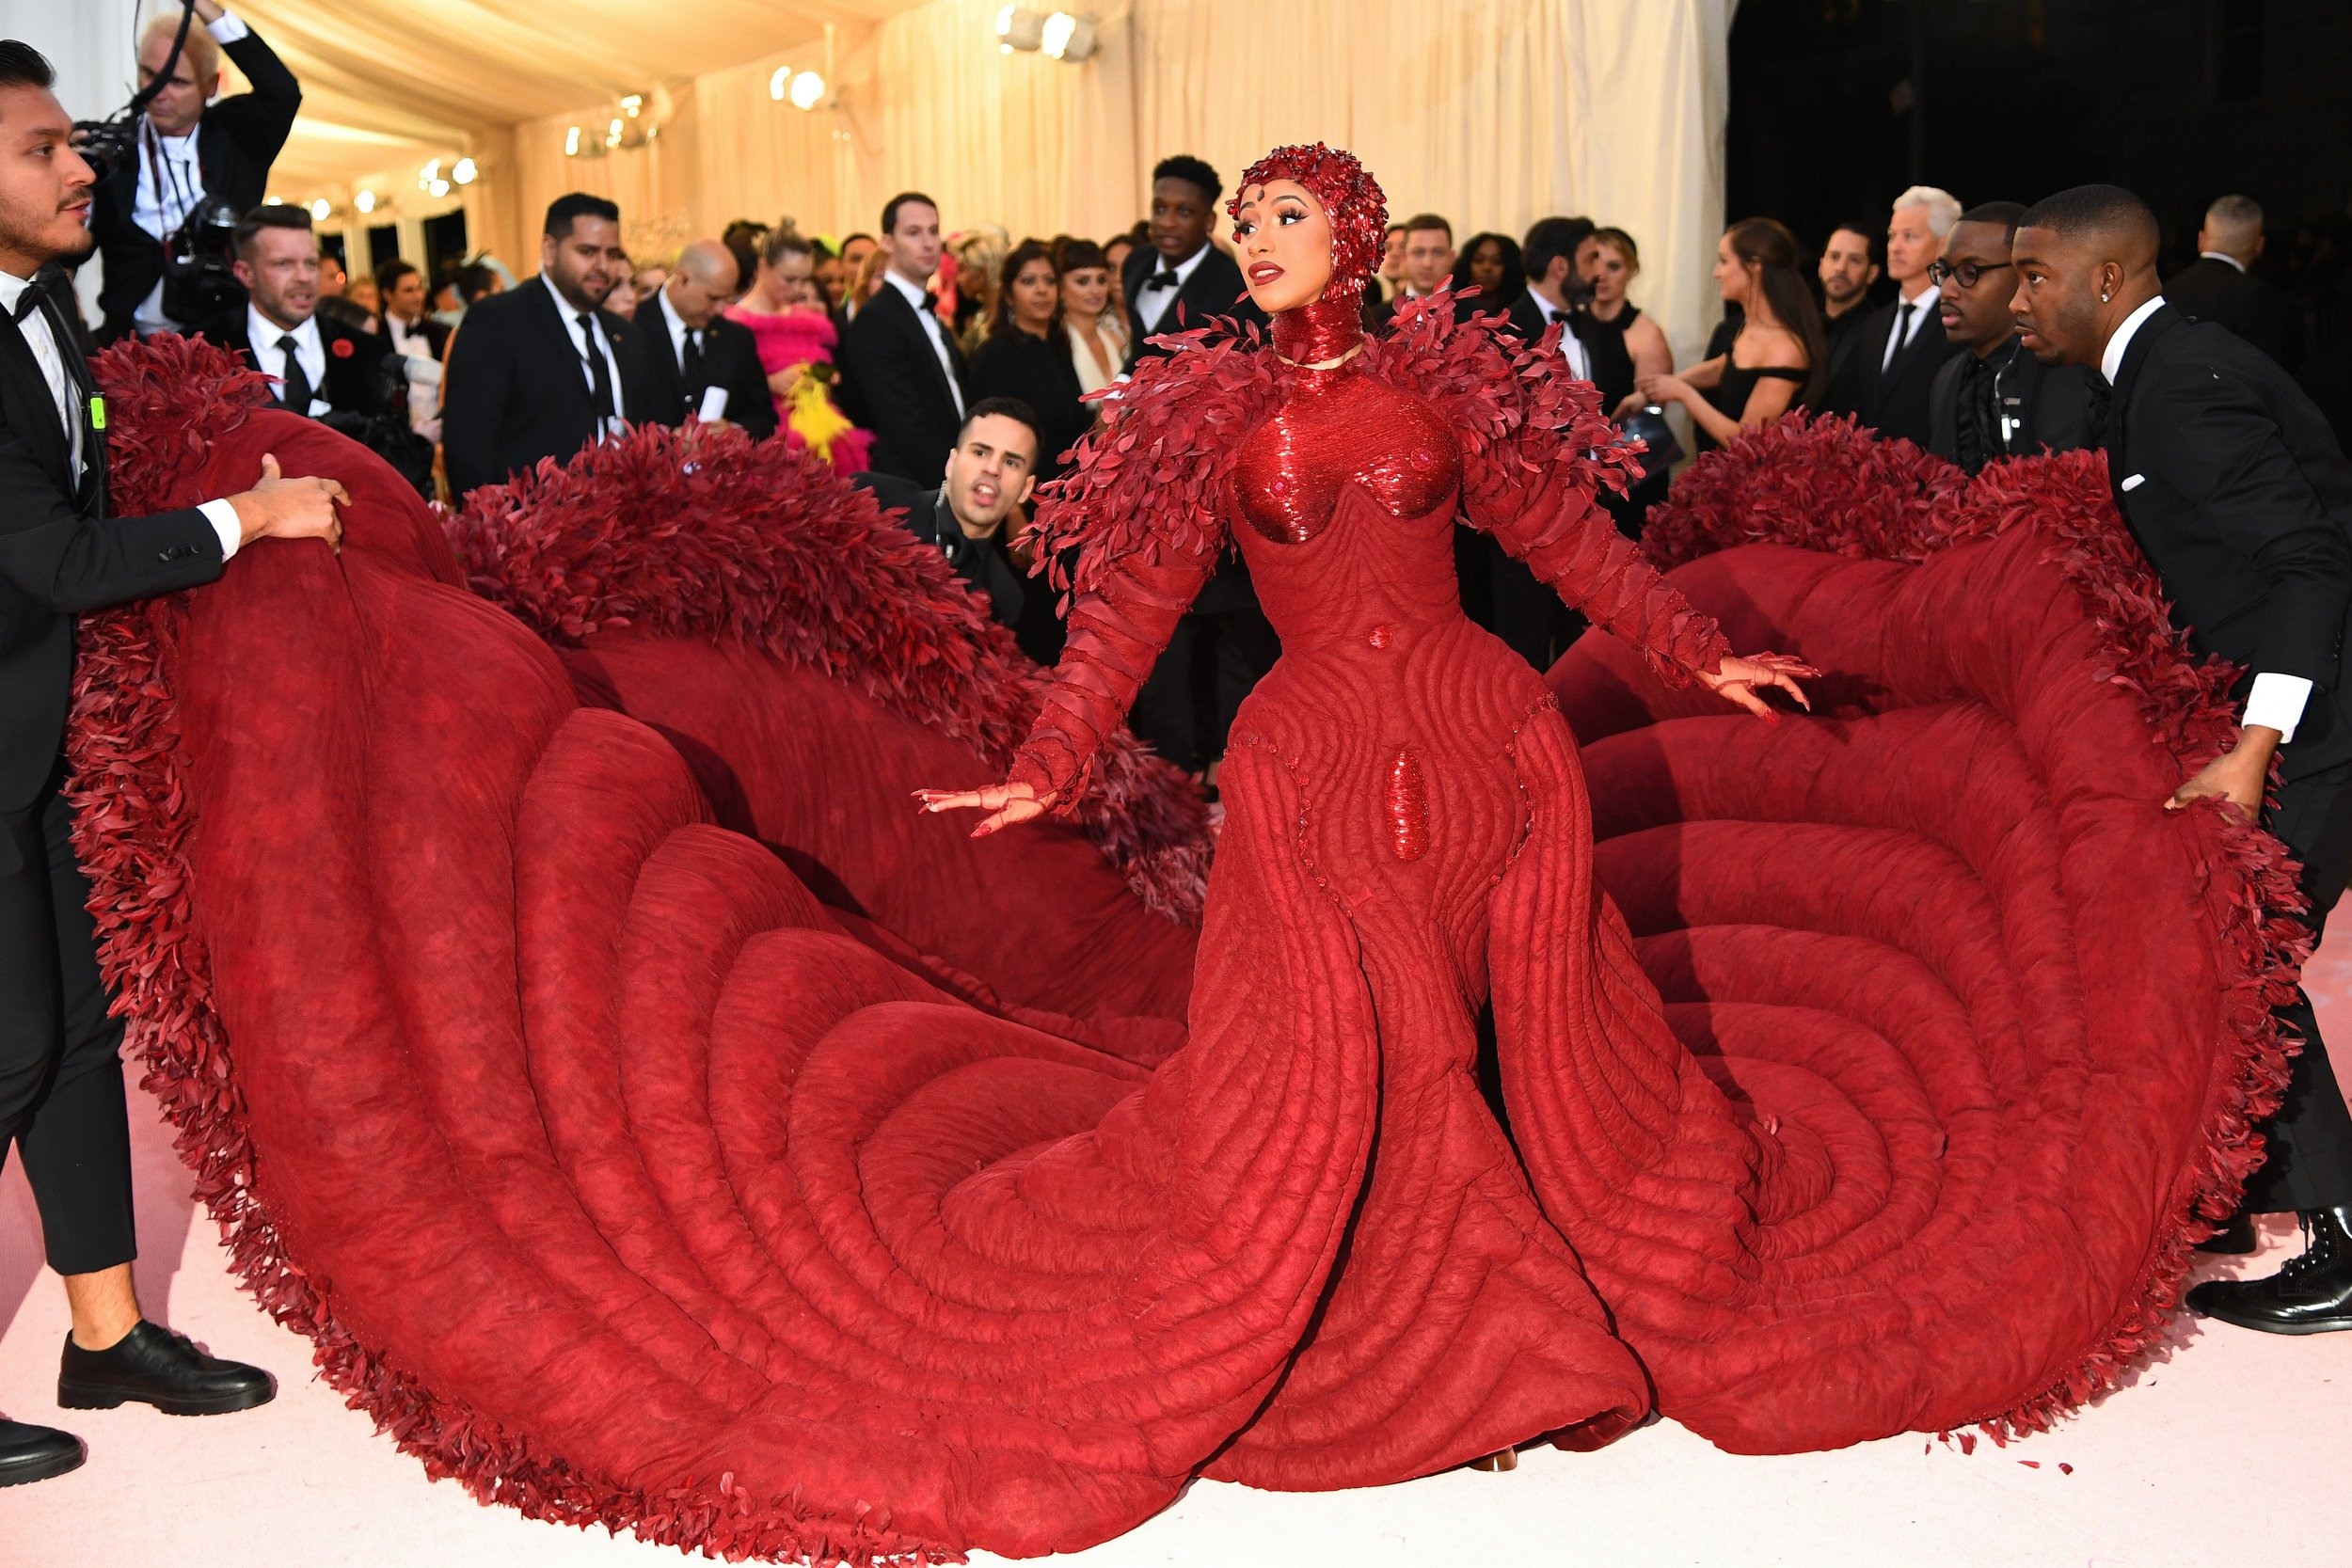 Cardi B could also go camp-ing with that sleeping bag-esque train. She gets extra points for the double-entendre.